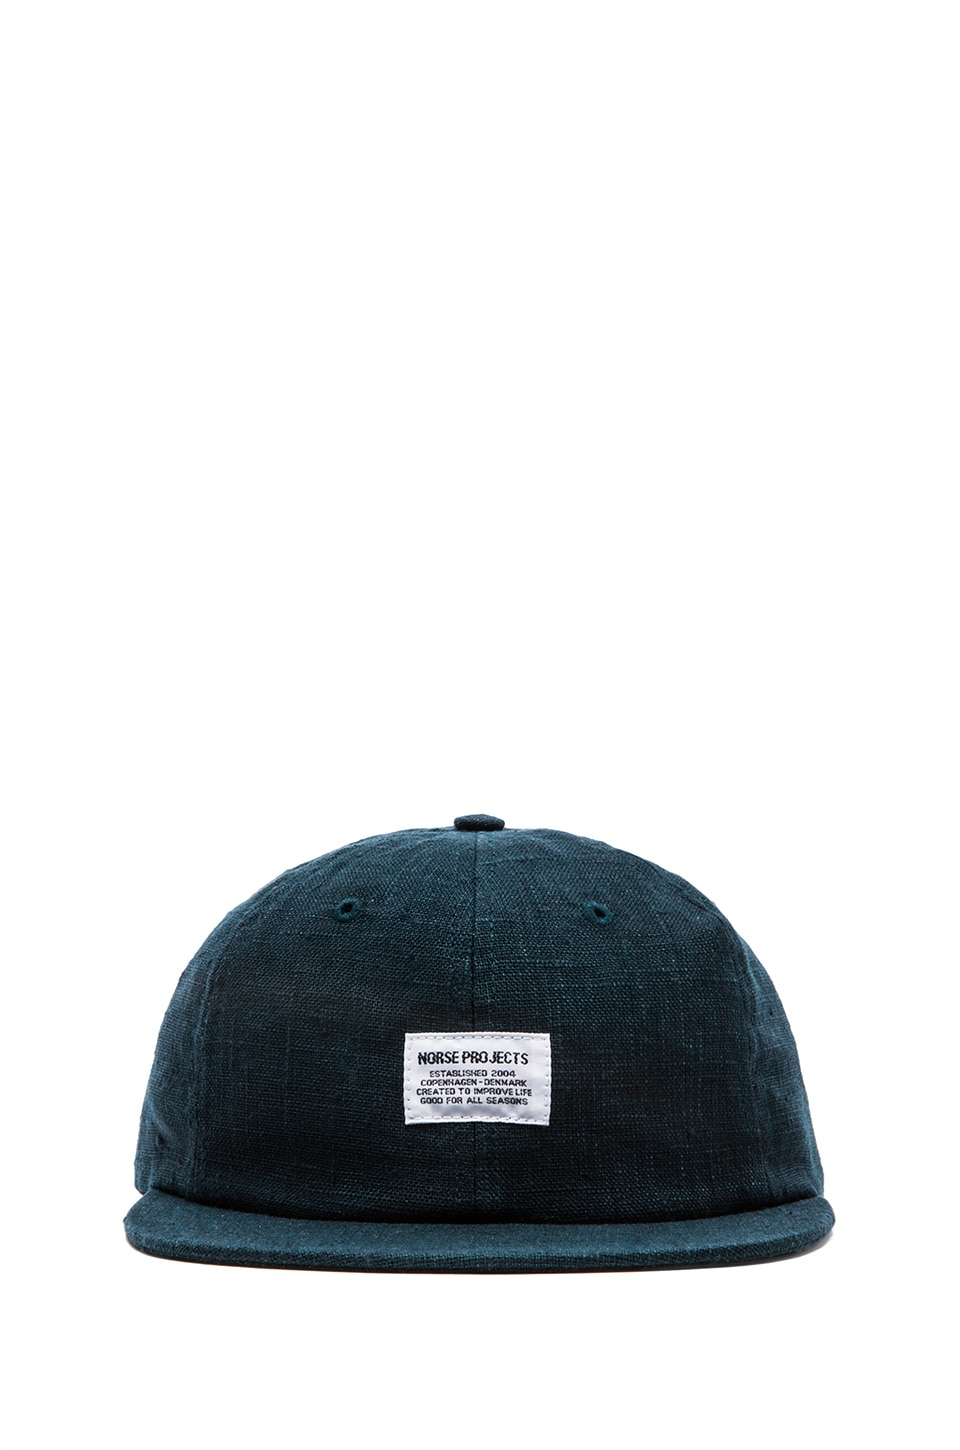 Norse Projects Linen Flat Cap in Deep Teal